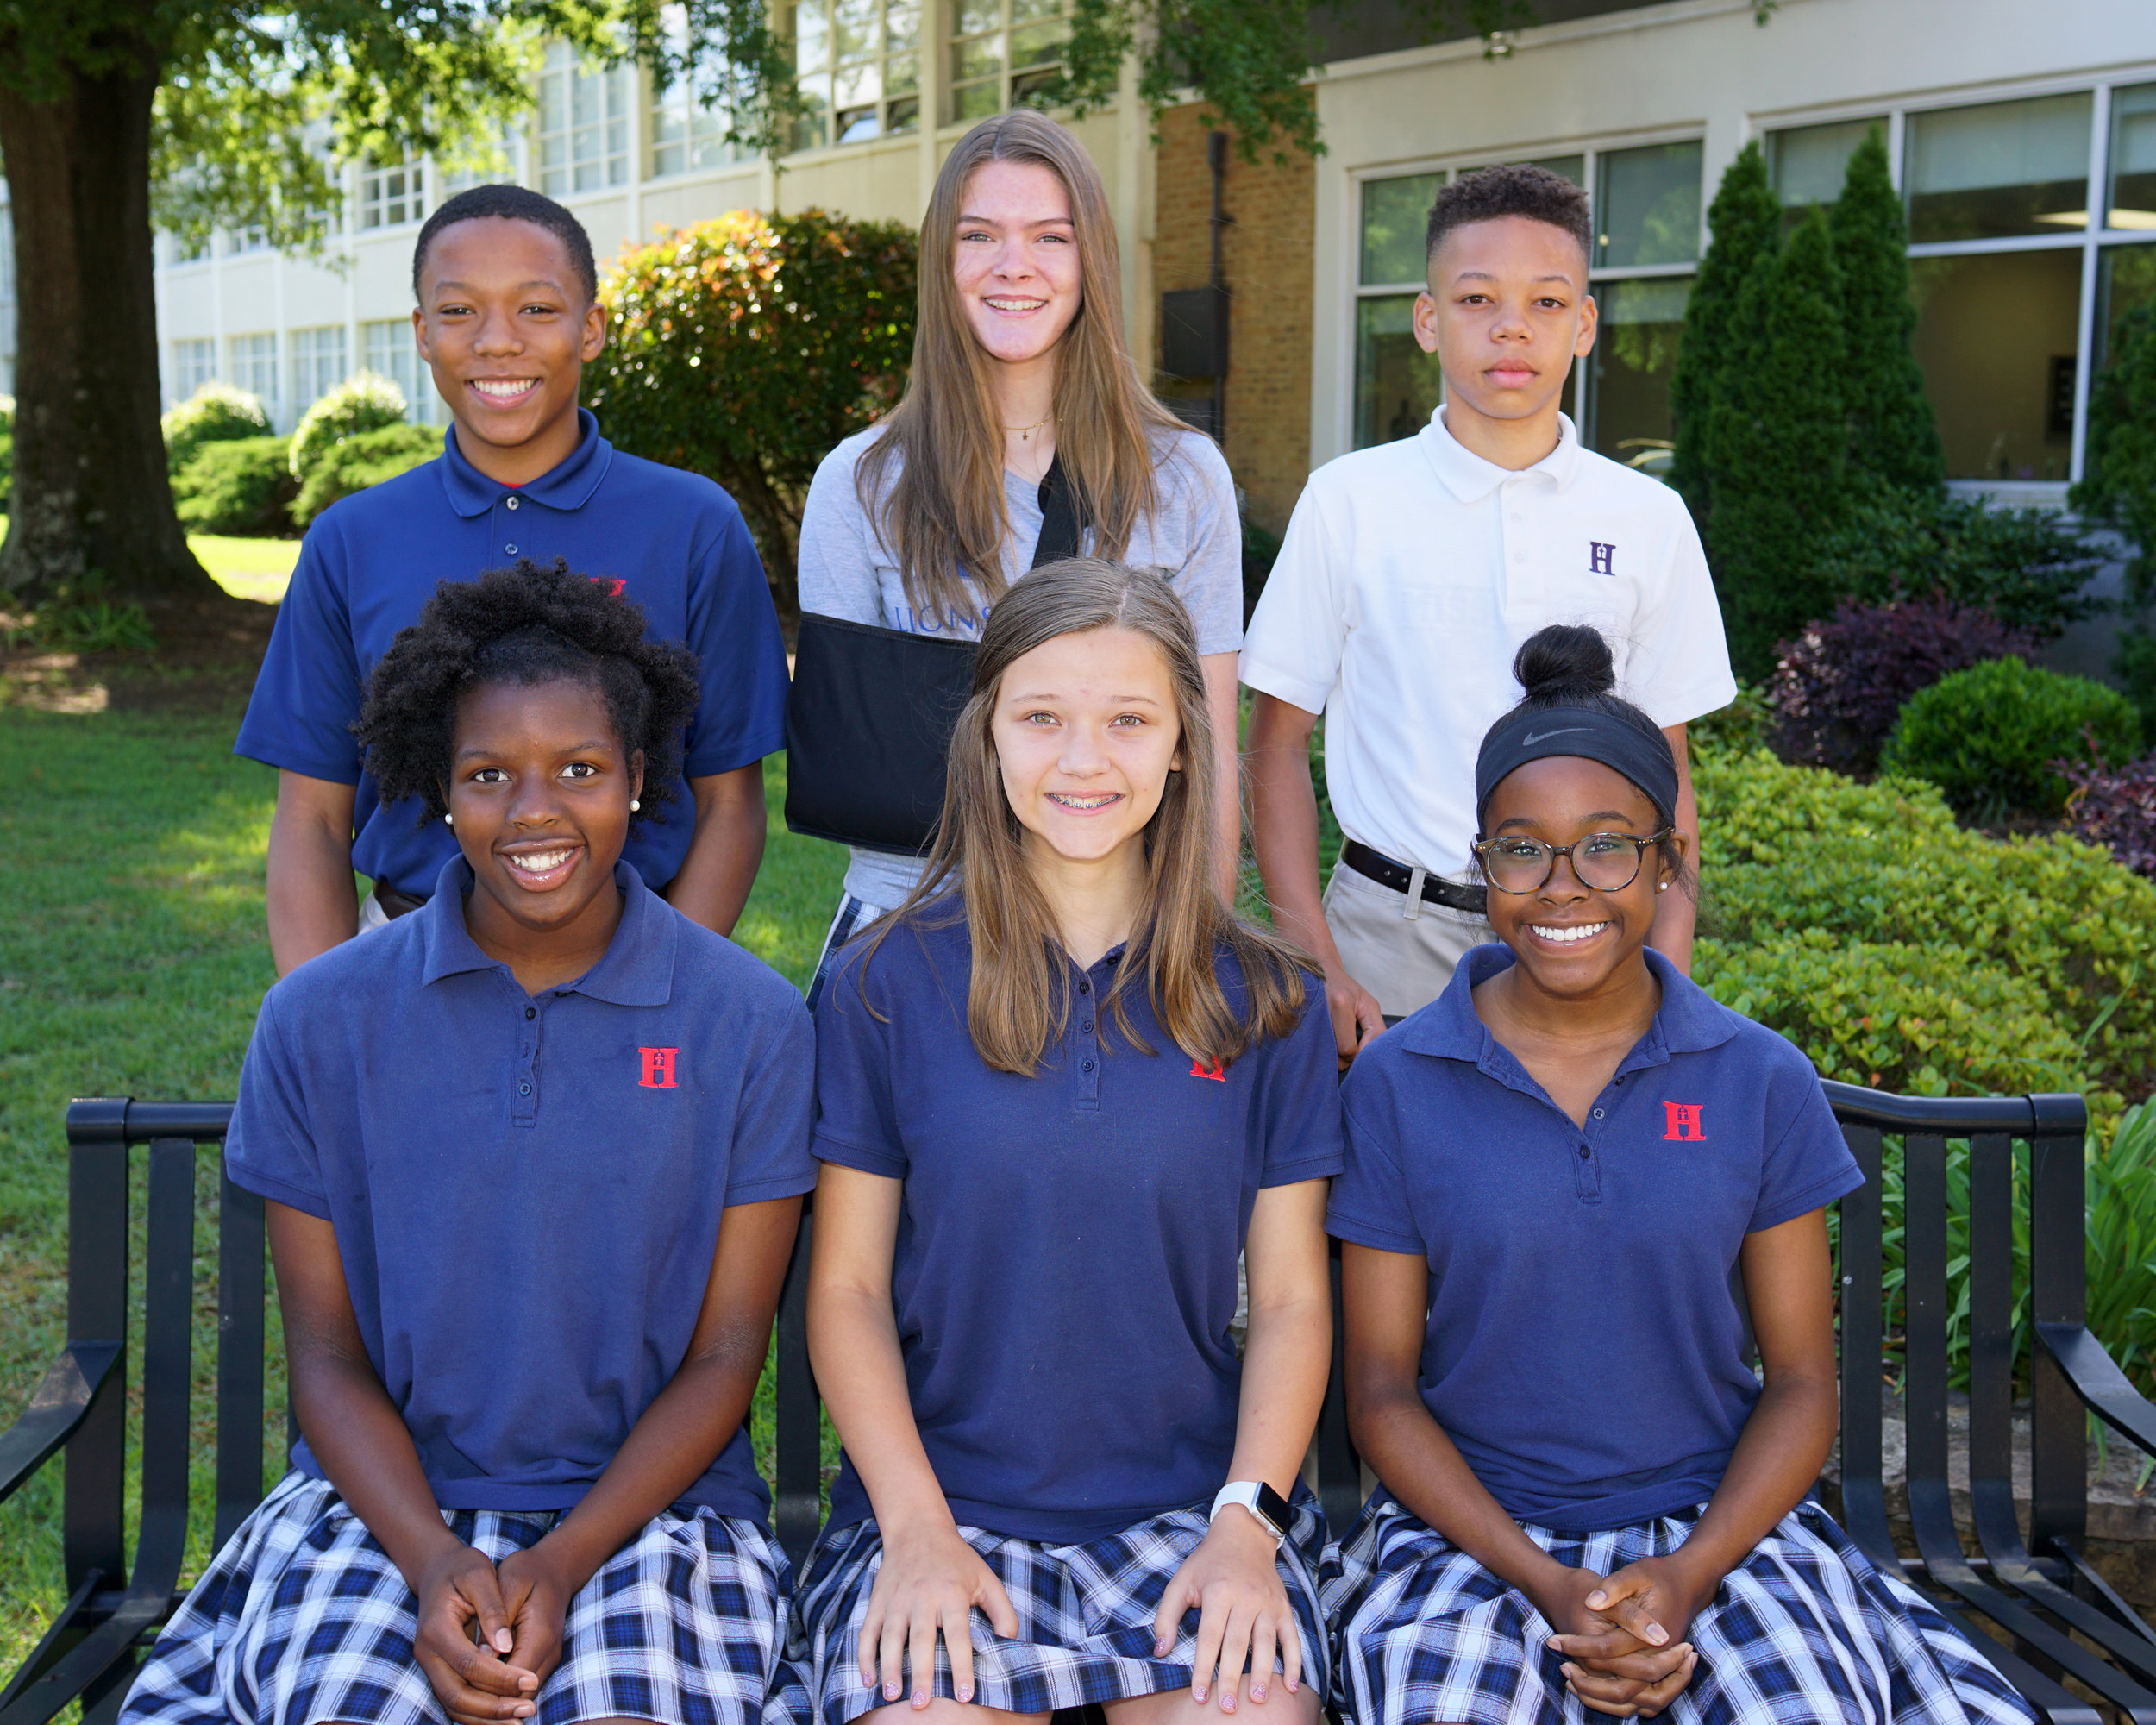 Back row (l to r): Blake Oswell, Madie Liberto, RJ Freeman  Front row (l to r): Makyah Thomas, Chandler Donlin, Shelby Williams